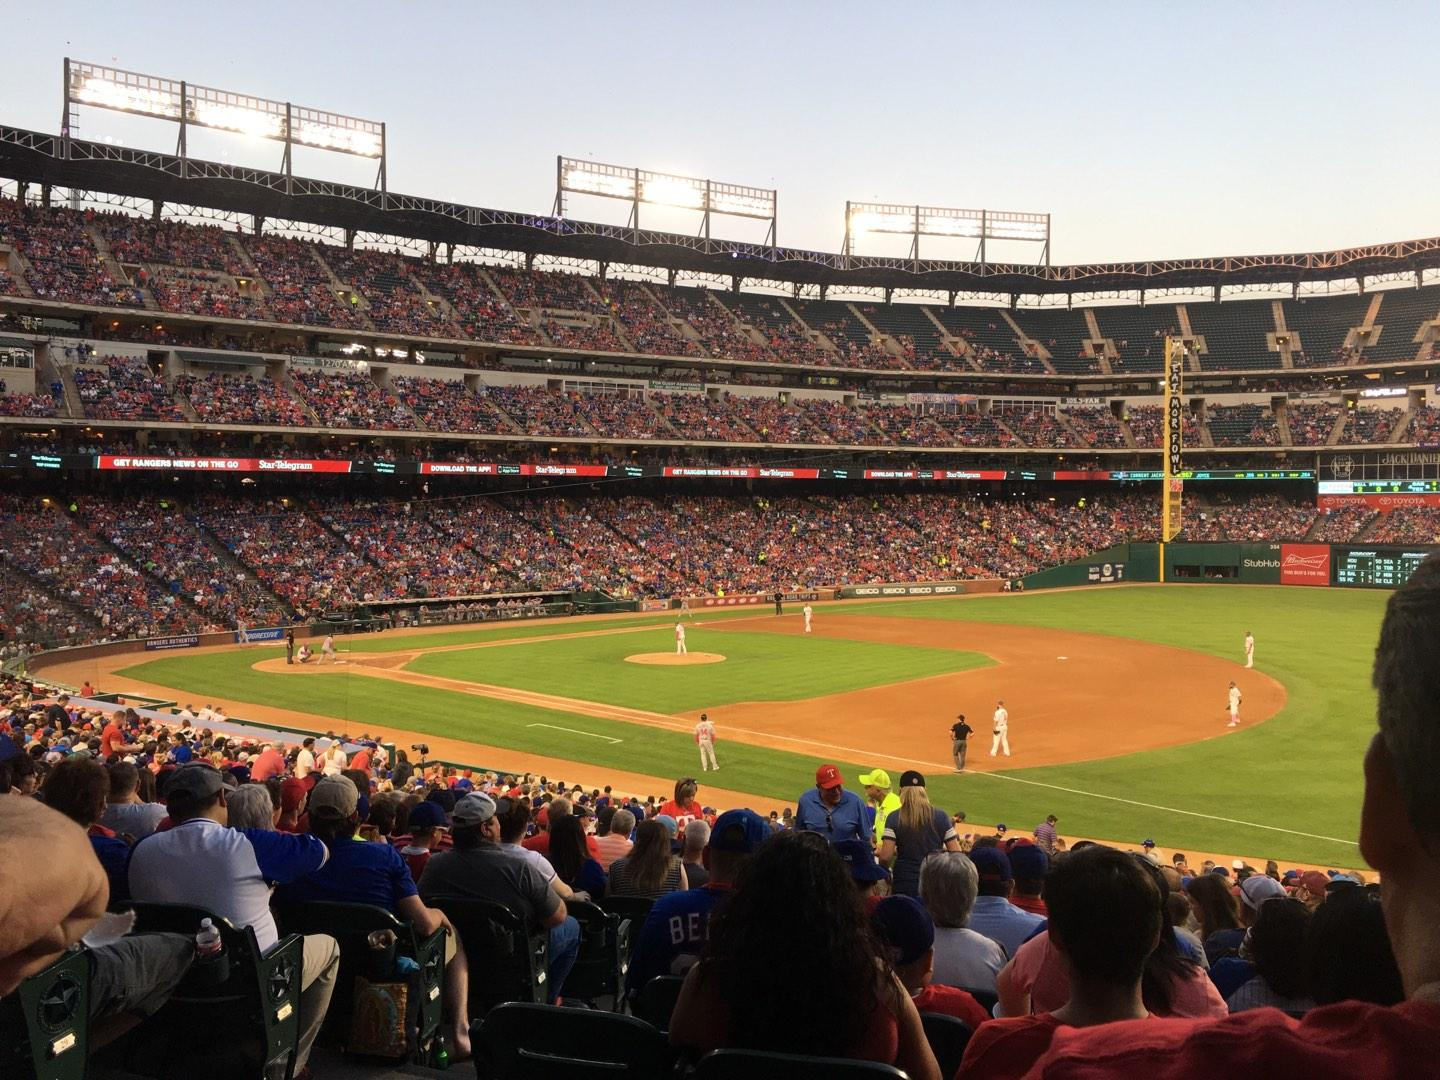 Globe Life Park in Arlington Section 37 Row 32 Seat 4